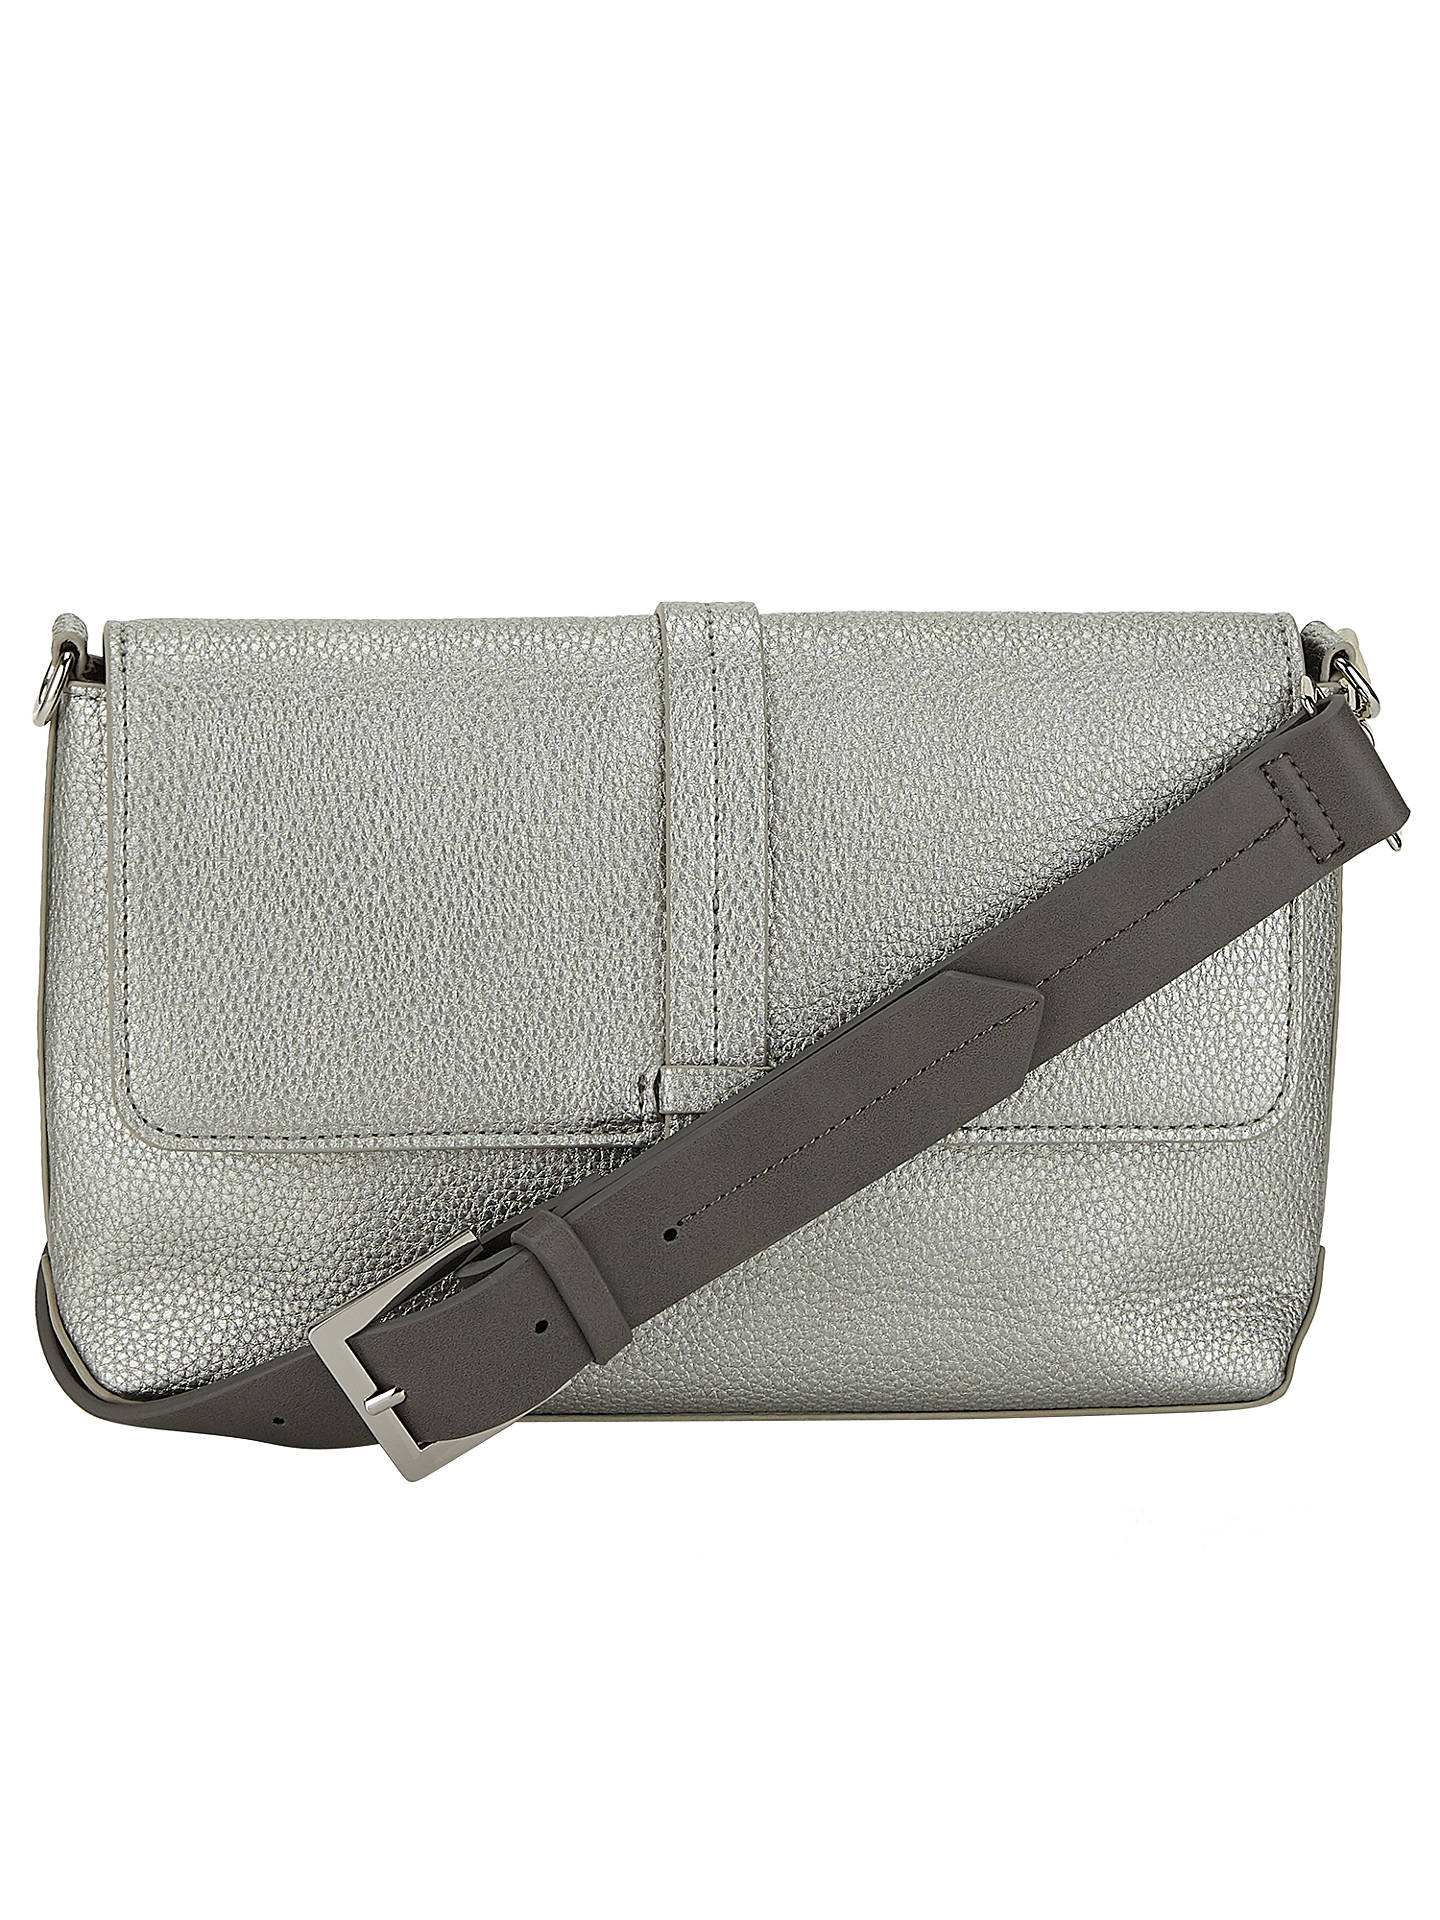 BuyKin by John Lewis Katie Mix Texture Across Body Bag, Silver Online at johnlewis.com